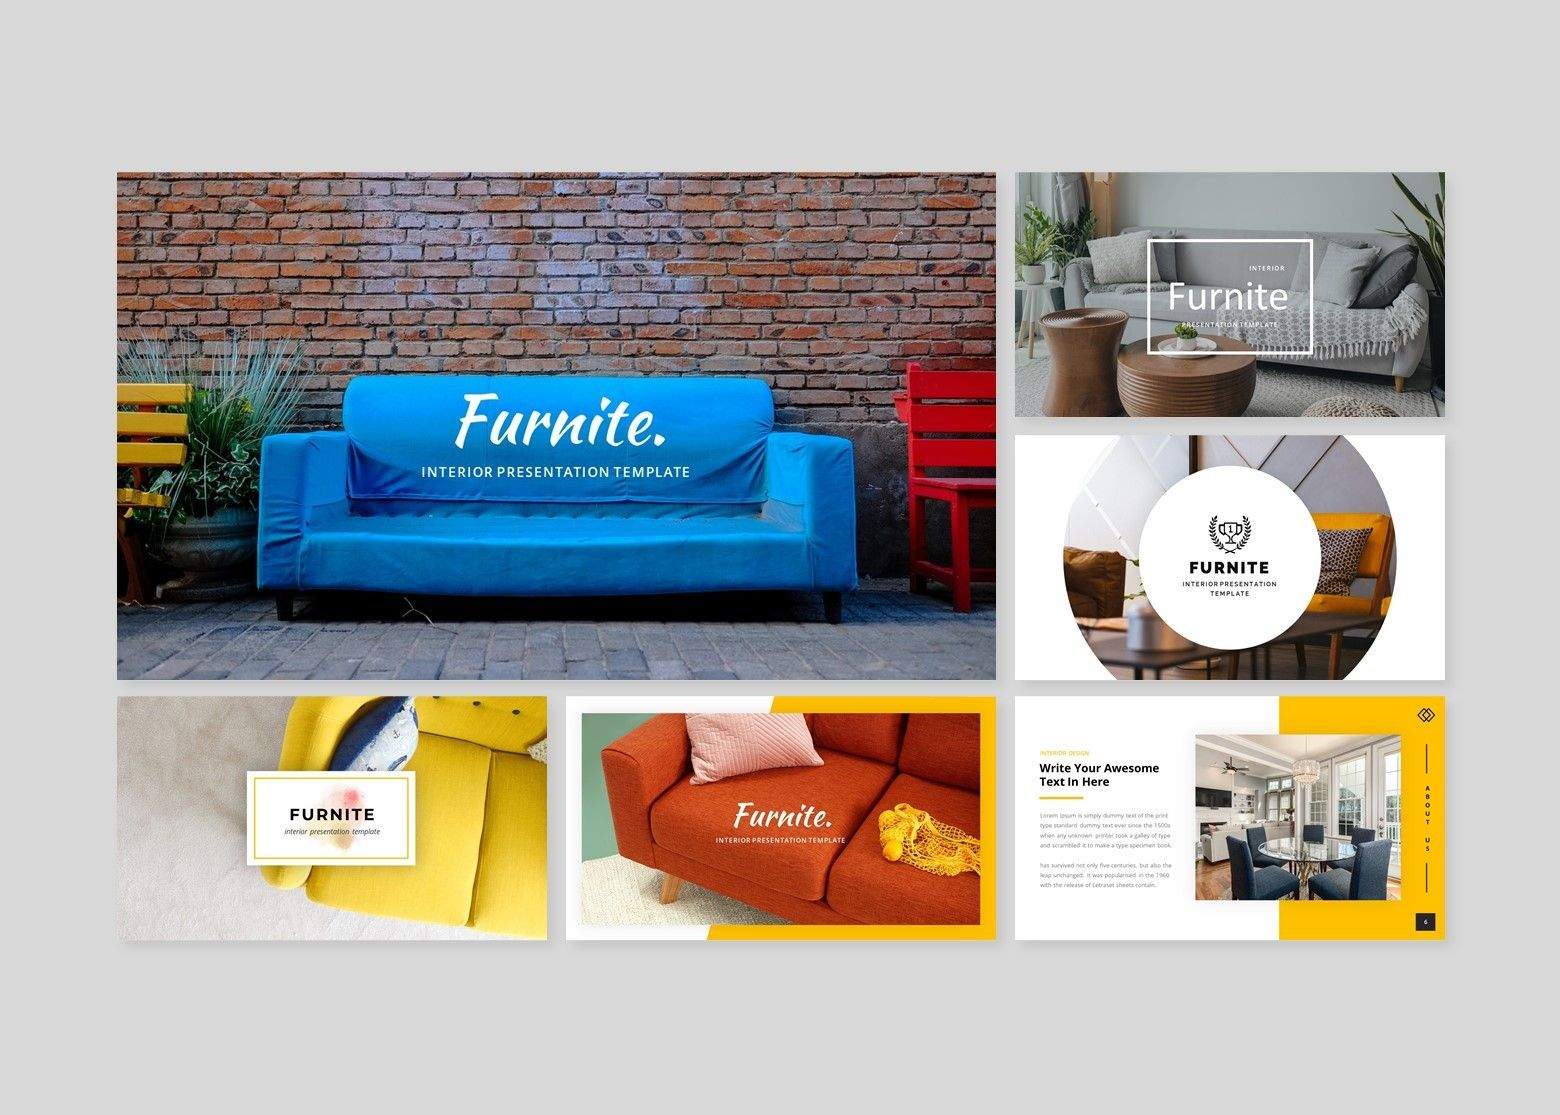 Furnite - Interior Design Google Slides Template, Slide 2, 08628, Business Models — PoweredTemplate.com